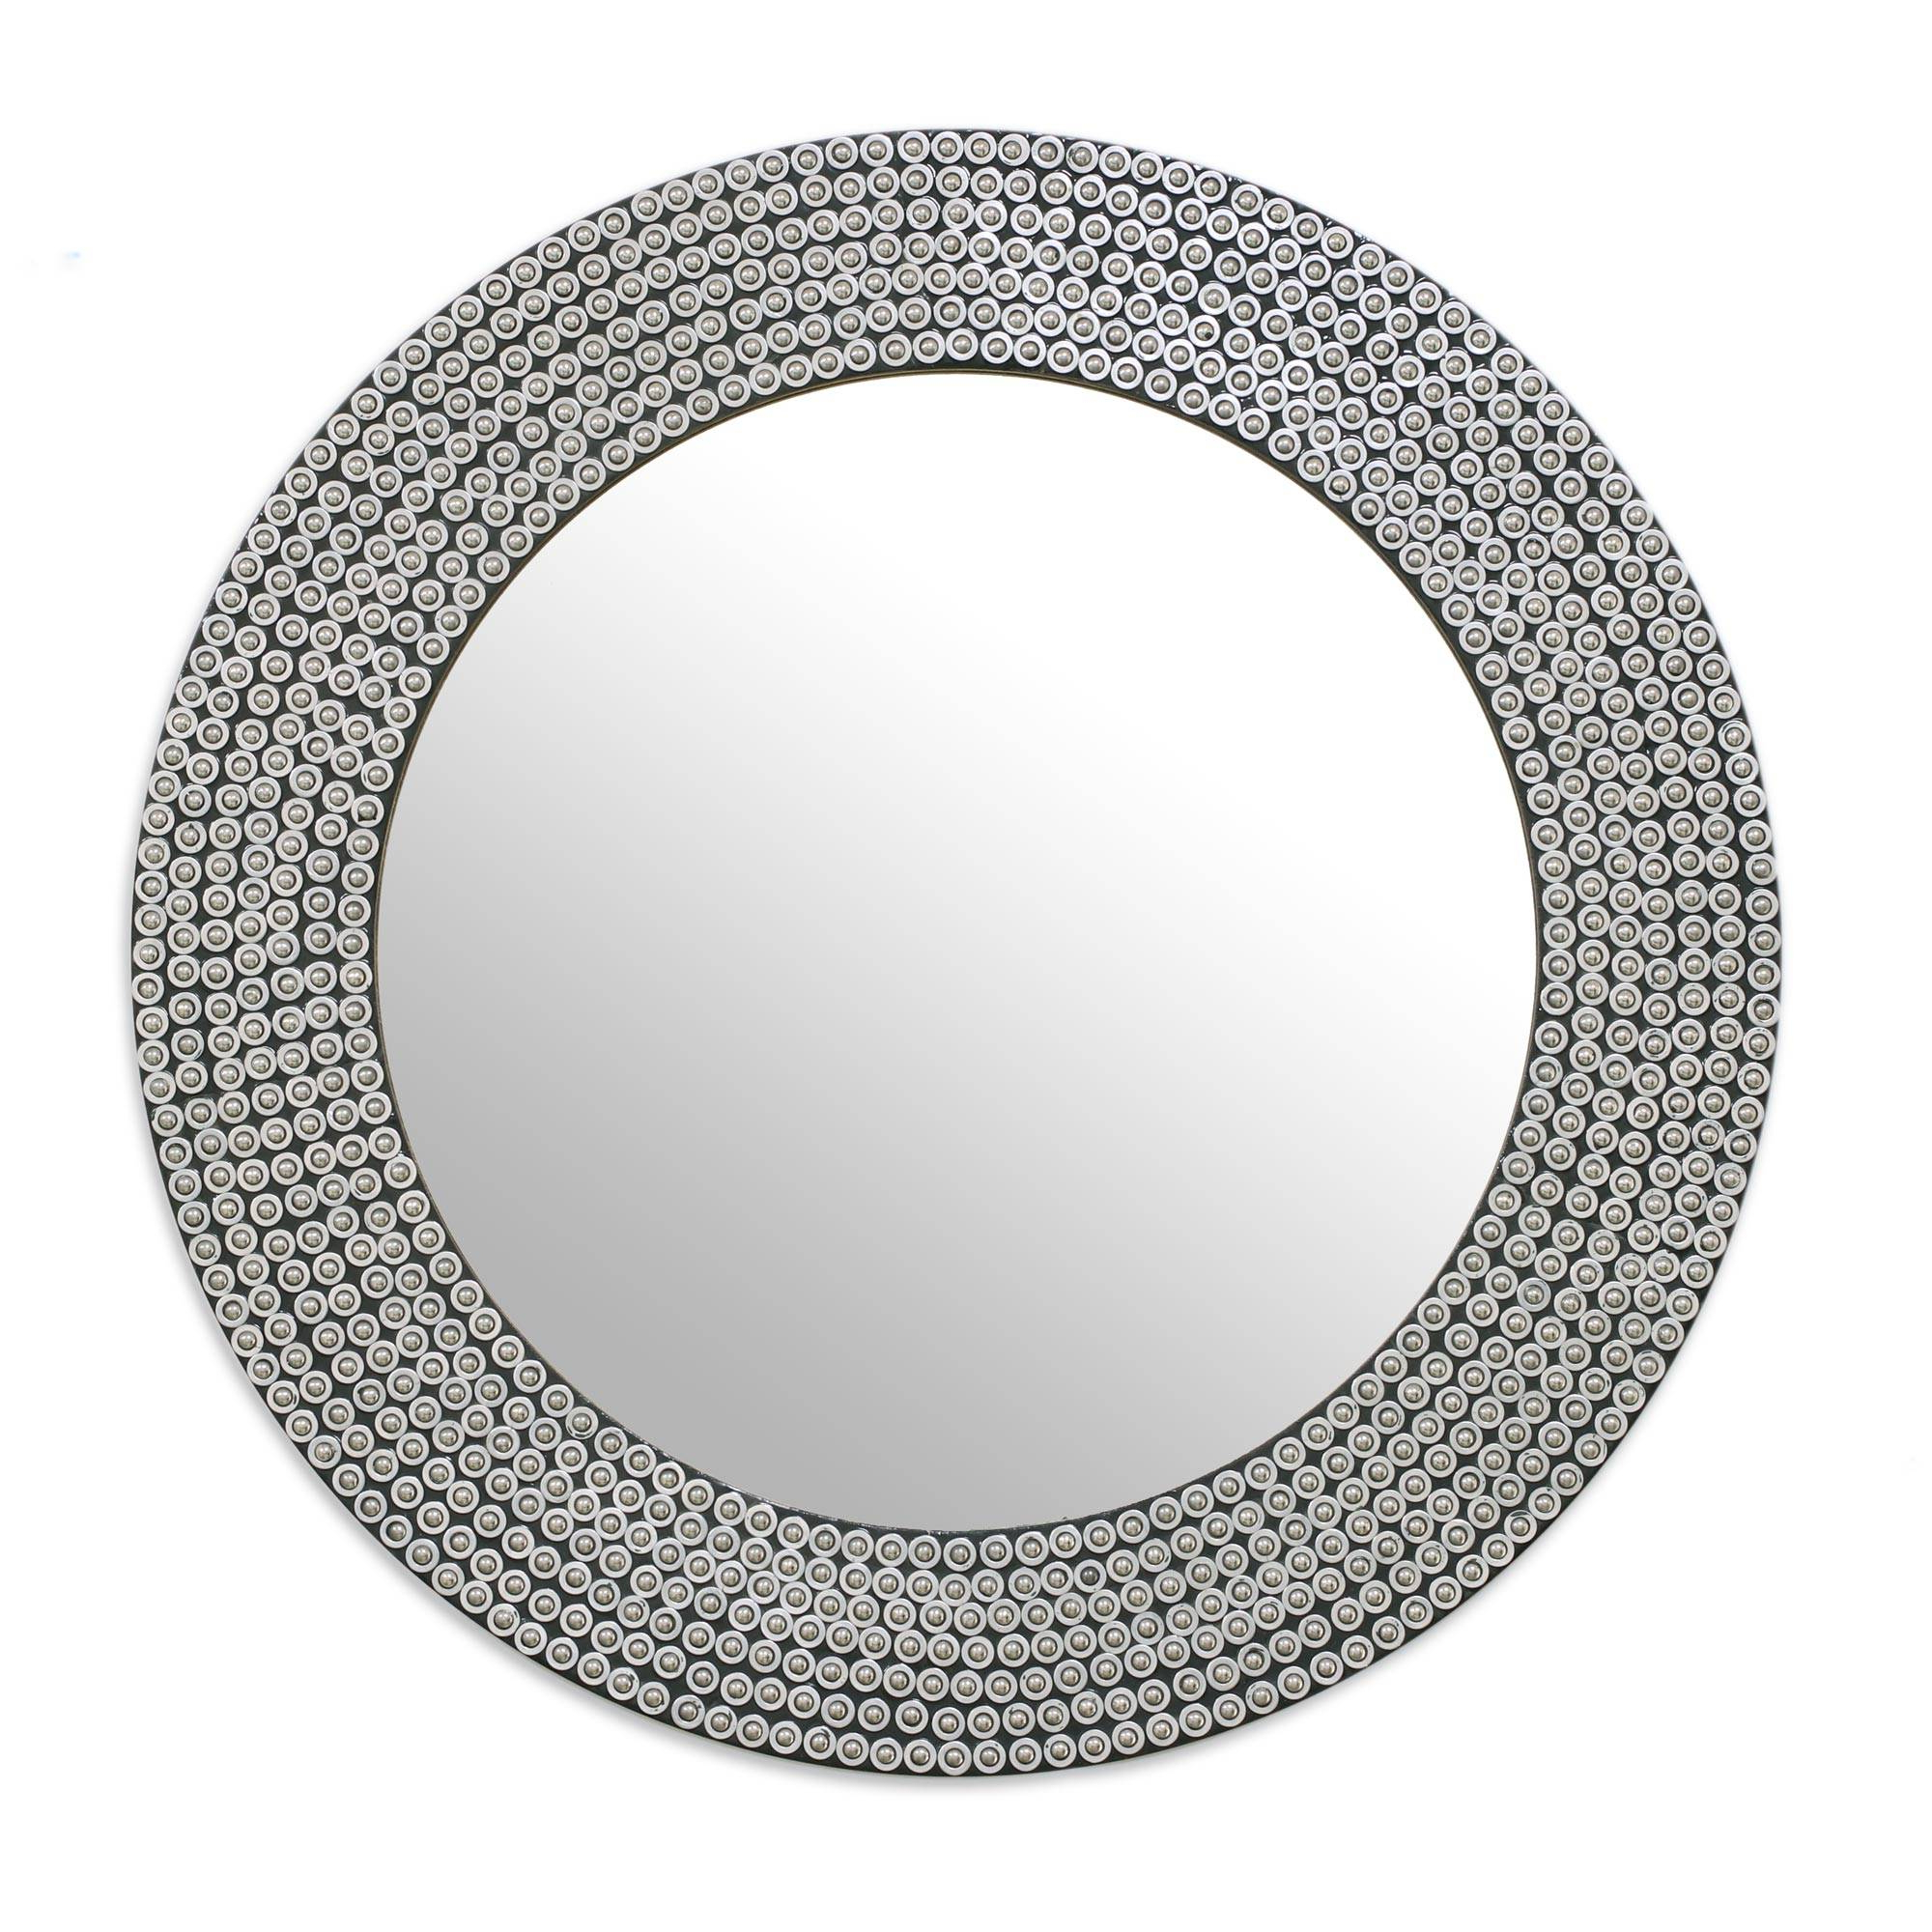 Most Recent Round Galvanized Metallic Wall Mirrors With Circular Shimmering Metal Wall Mirror From India, 'silvery Shine' (View 19 of 20)